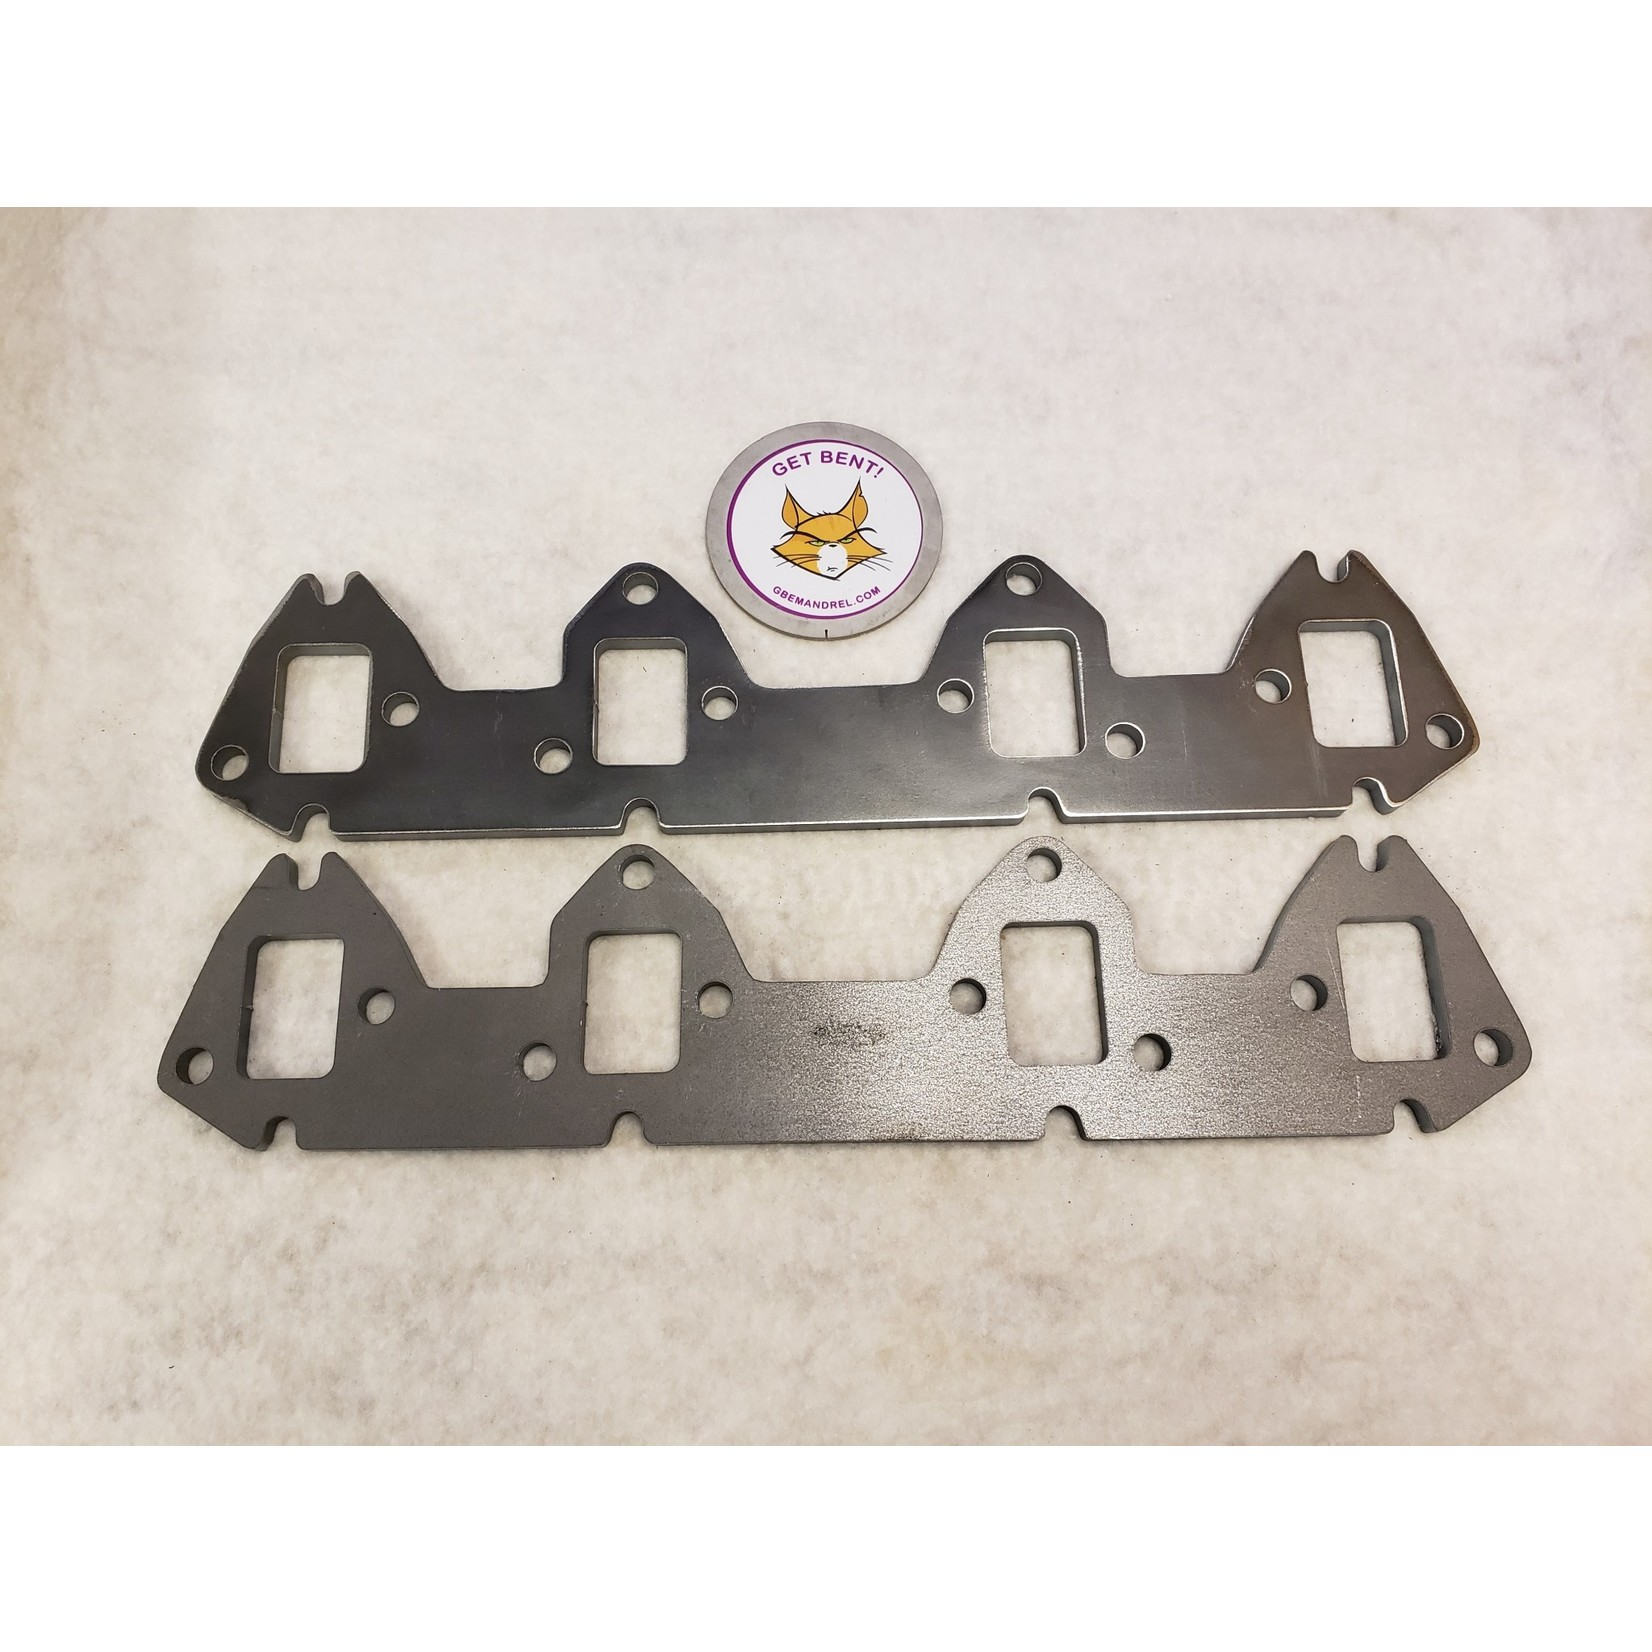 GBE FORD 332-390 FE DUAL BOLT PATTERN STEEL HEADER FLANGES